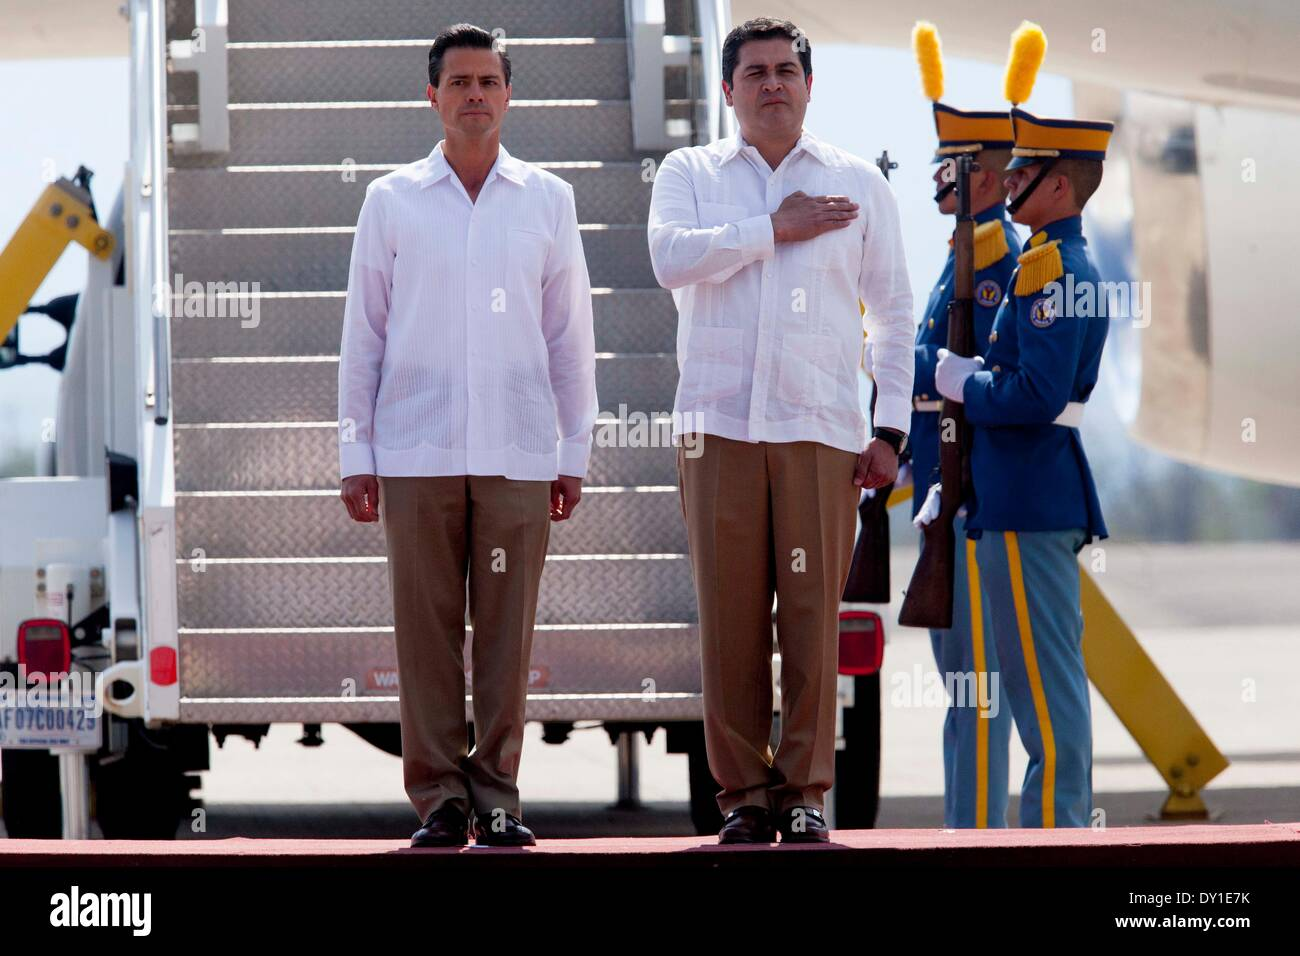 Palmerola, Honduras. 2nd Apr, 2014. Hondura's President Juan Orlando Hernandez (R) welcomes his Mexican counterpart Enrique Pena Nieto (L) at the Jose Enrique Soto Cano air base, in Palmerola, north of Tegucigalpa, Honduras, on April 2, 2014. Enrique Pena Nieto arrived in Honduras on Wednesday, to sign a joint declaration of colaboration on migration, comerce, security and tourism, among other themes with his Honduran counterpart Juan Orlando Hernandez. © Mexico's Presidency/Xinhua/Alamy Live News - Stock Image